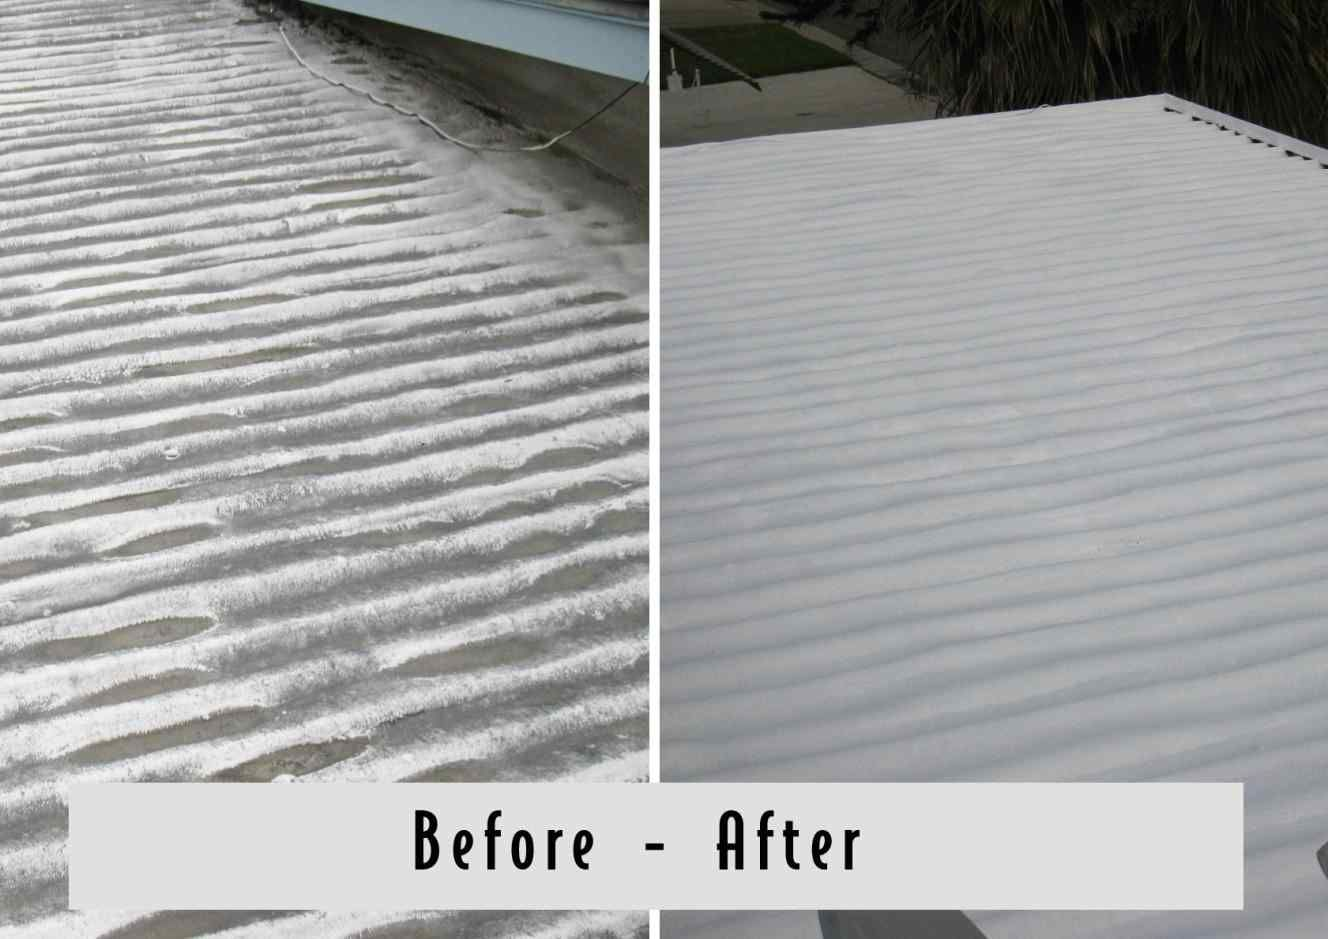 Sealant For Metal Roof Home Roof Ideas Metal Roof Roof Roof Design